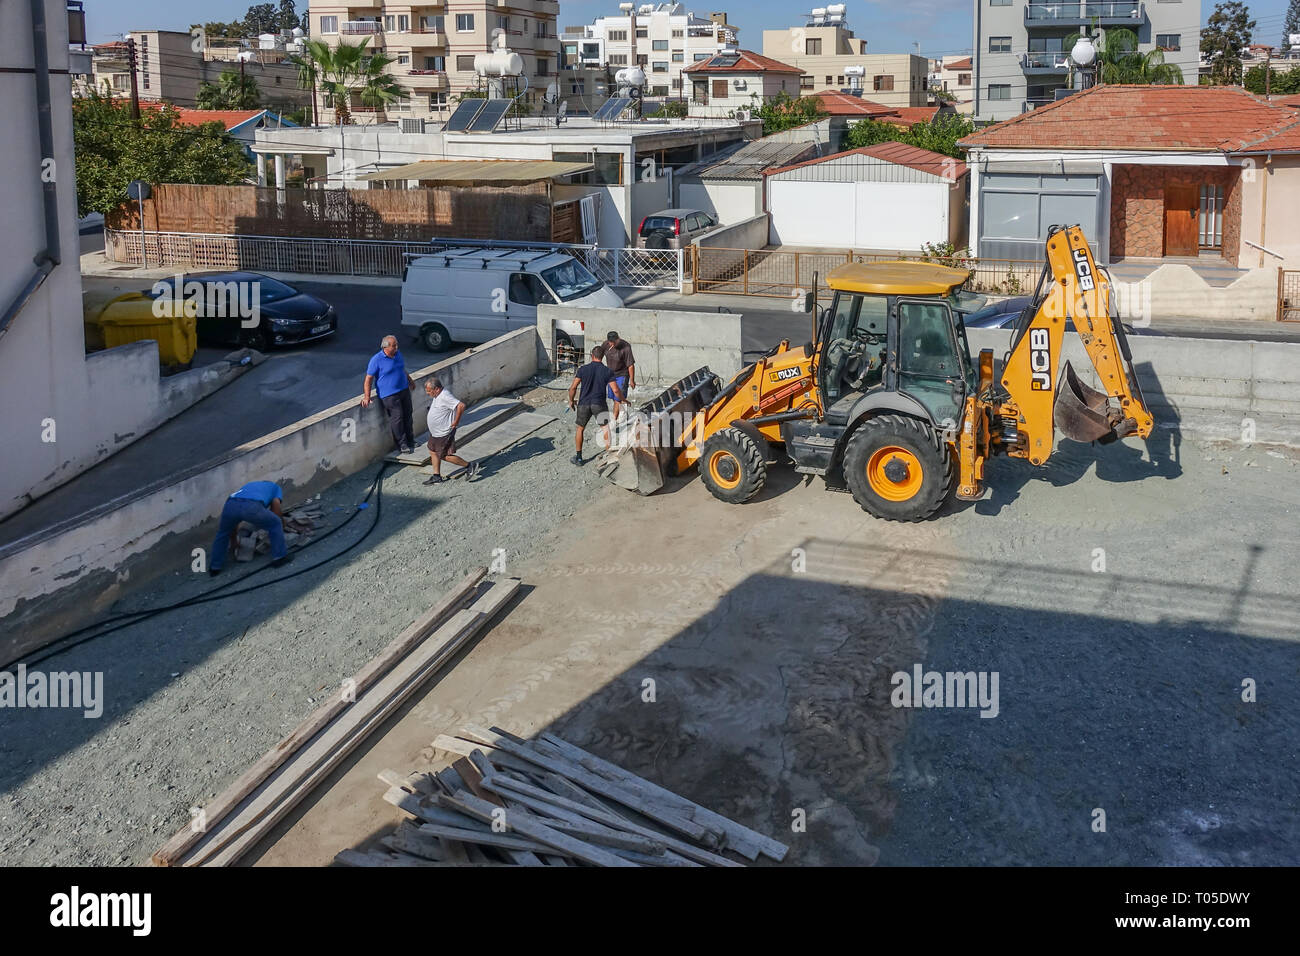 Limassol, Cyprus - November 4, 2018: JCB with workmen on abuilding site. Stock Photo